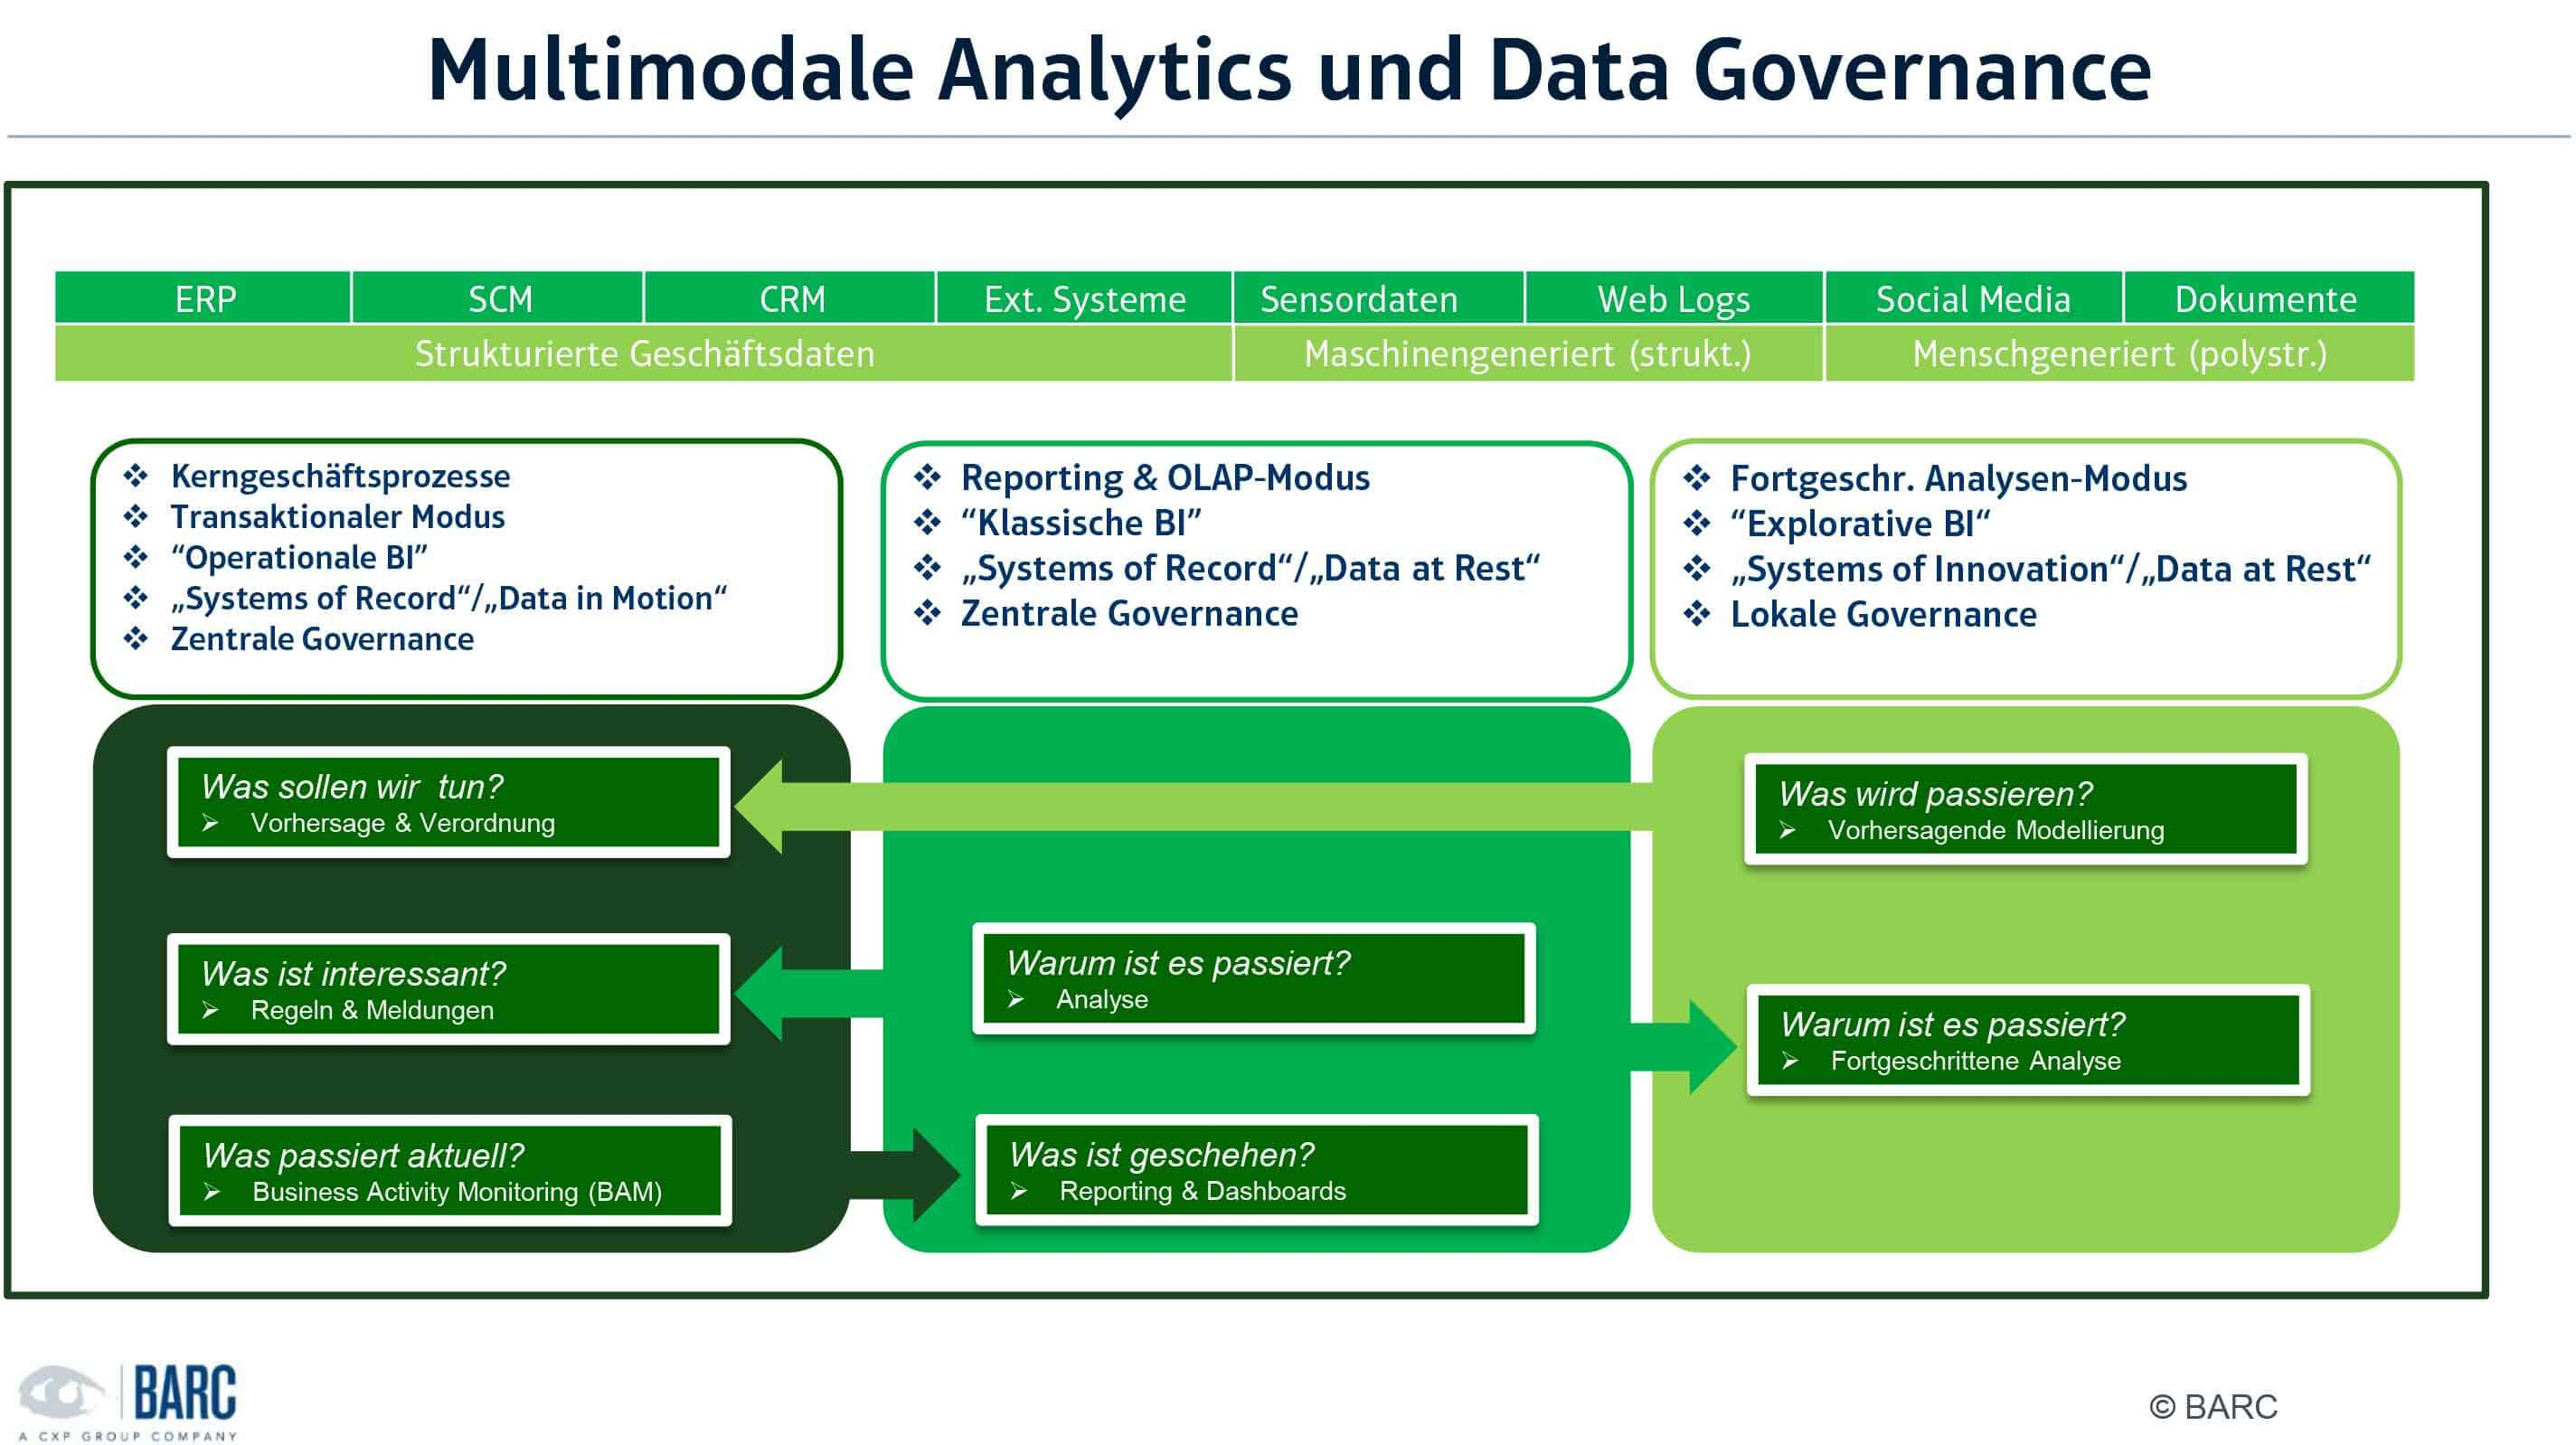 Abbildung 1: Datenumgebungen multimodaler Analytics und Data Governance; Quelle: BARC